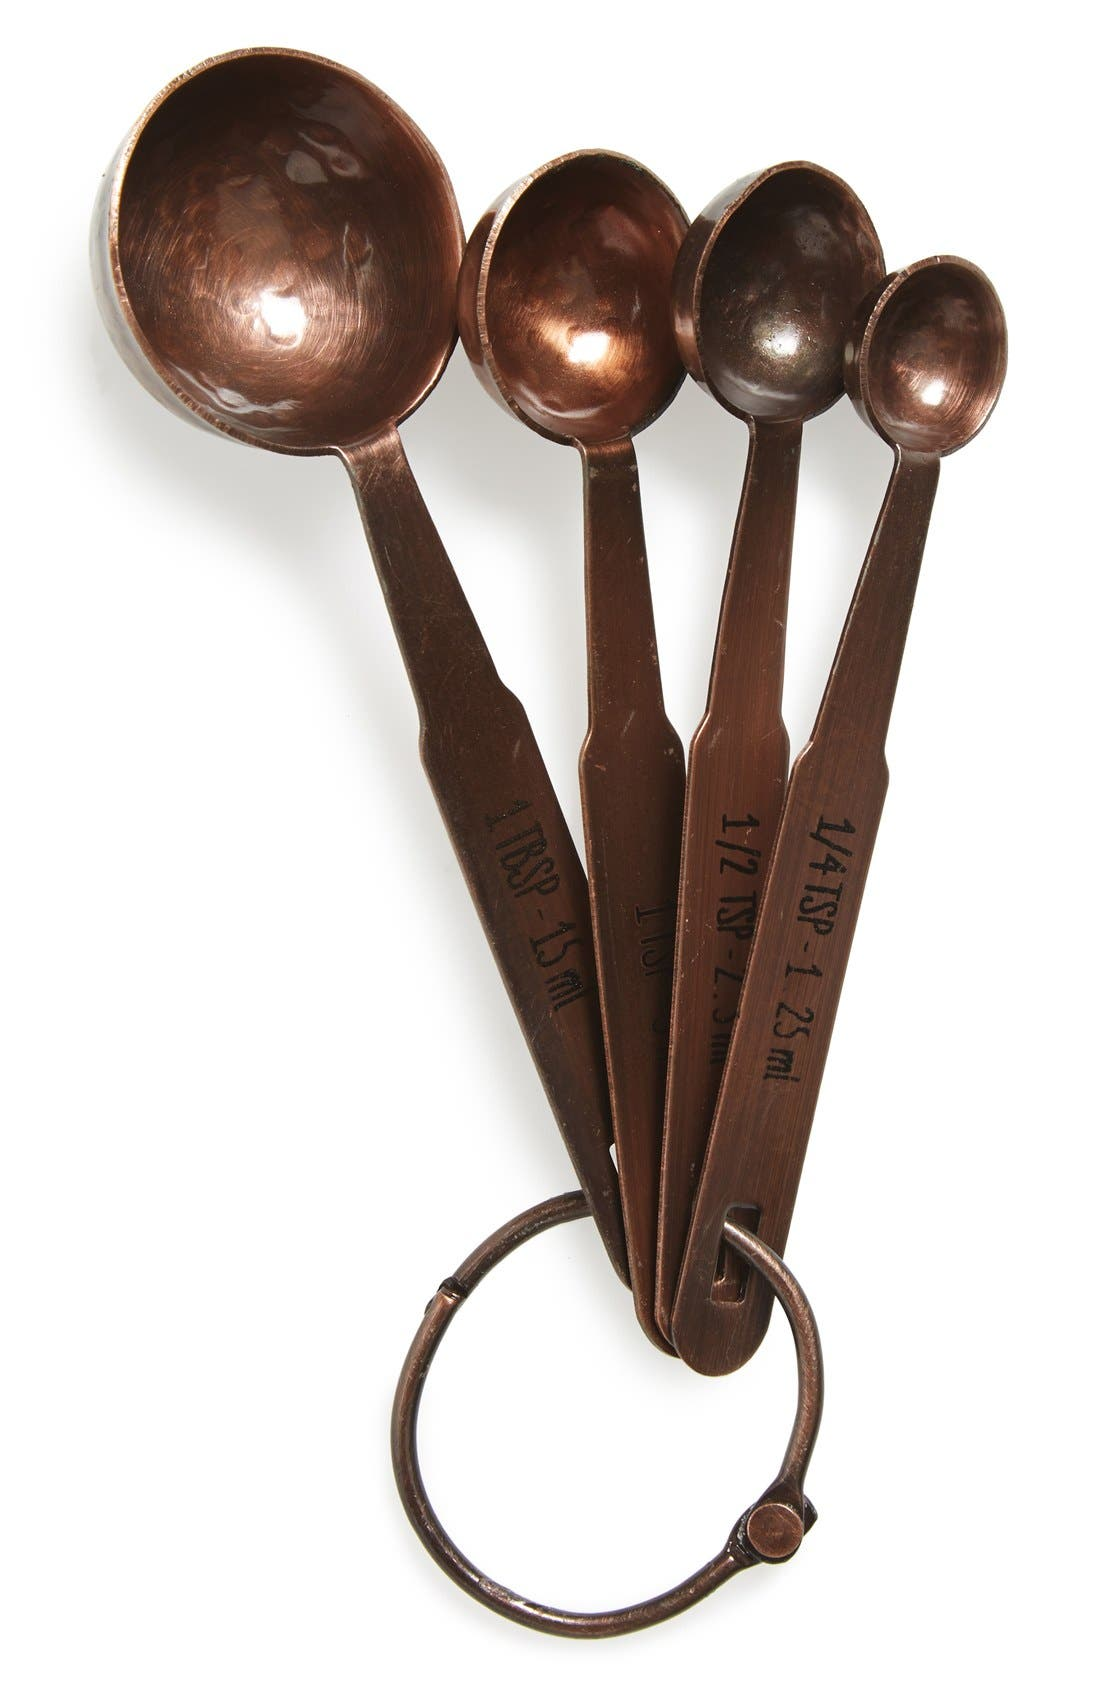 Main Image - Thirstystone Copper Measuring Spoon Set